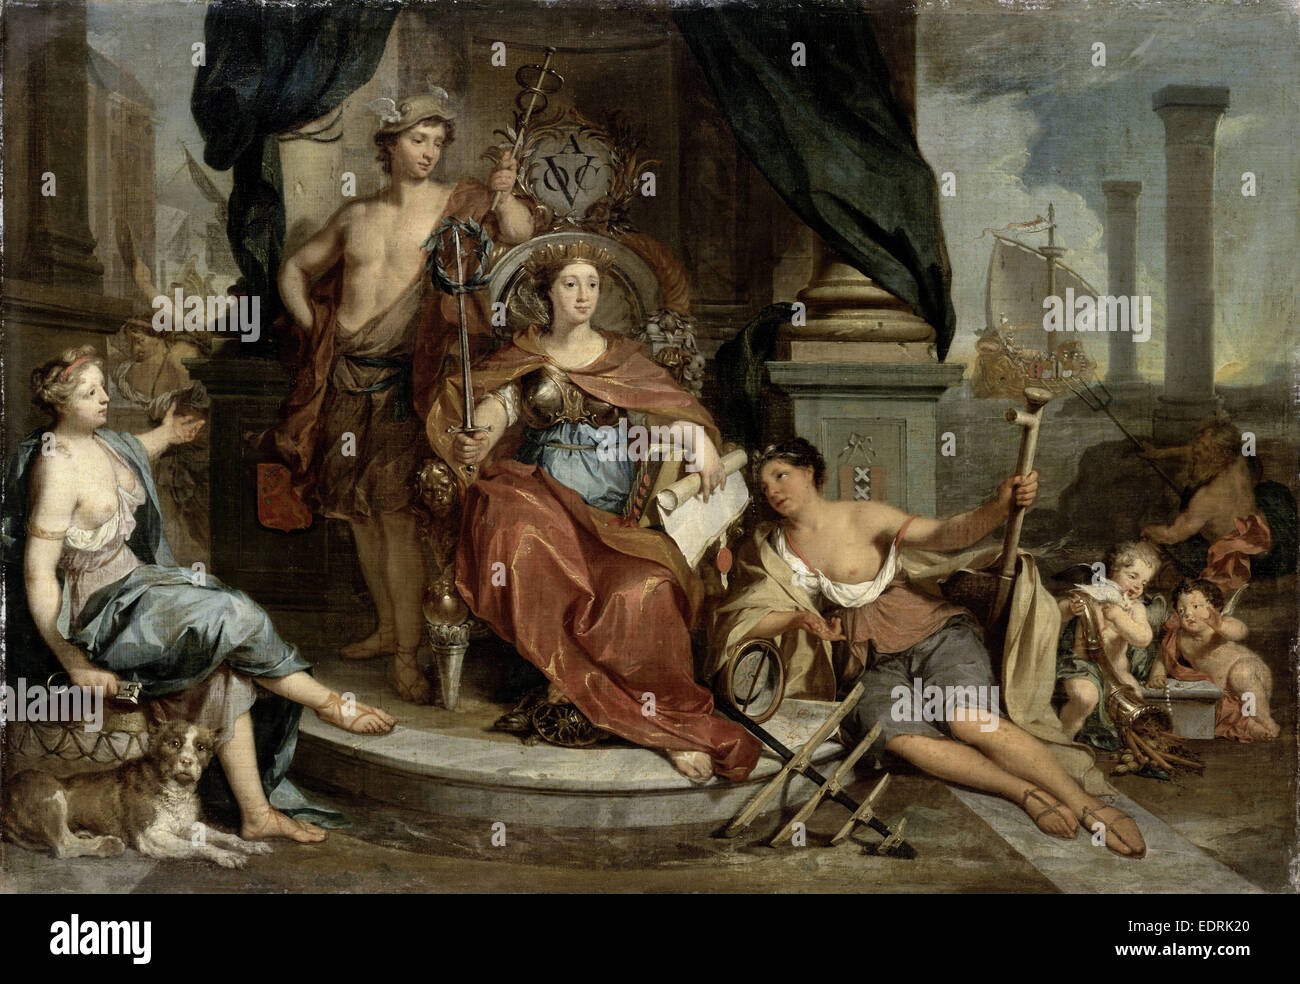 Apotheosis of the Dutch East India Company, Allegory of the Amsterdam Chamber of Commerce of the VOC, Nicolaas Verkolje - Stock Image